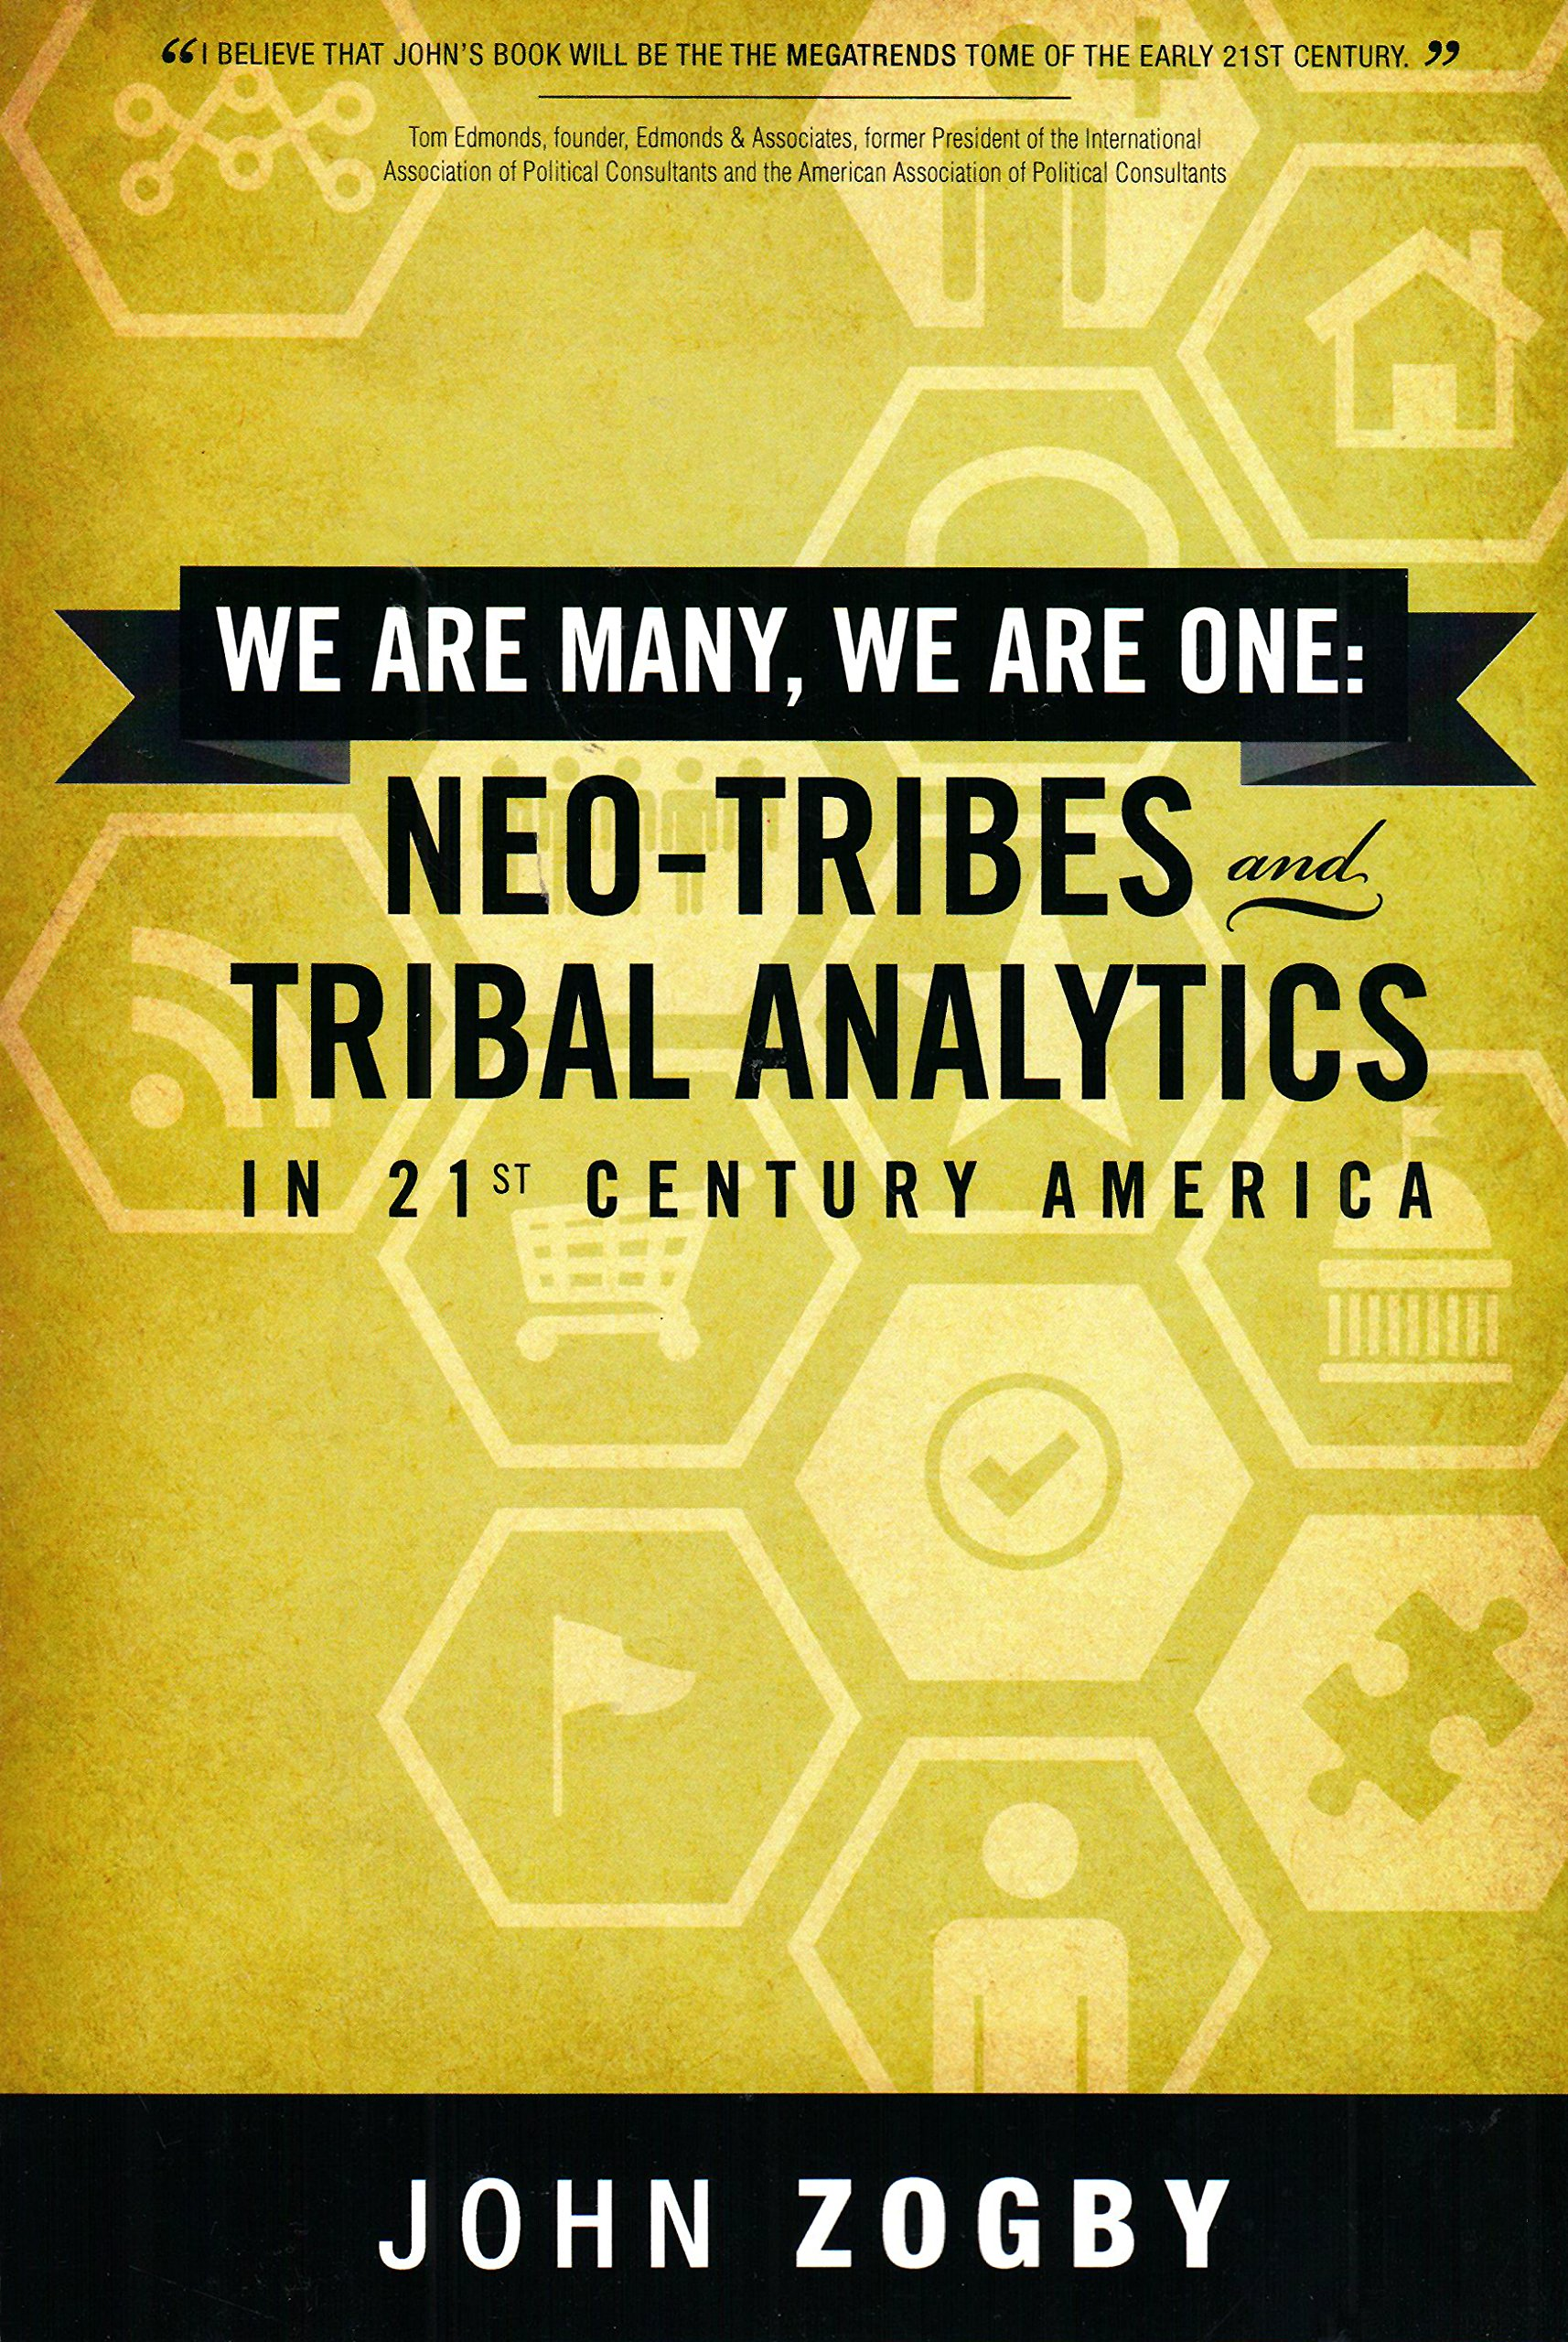 1caa74199 We are Many, We are One: Neo-Tribes and Tribal Analytics in 21st Century  America Paperback – July 4, 2016